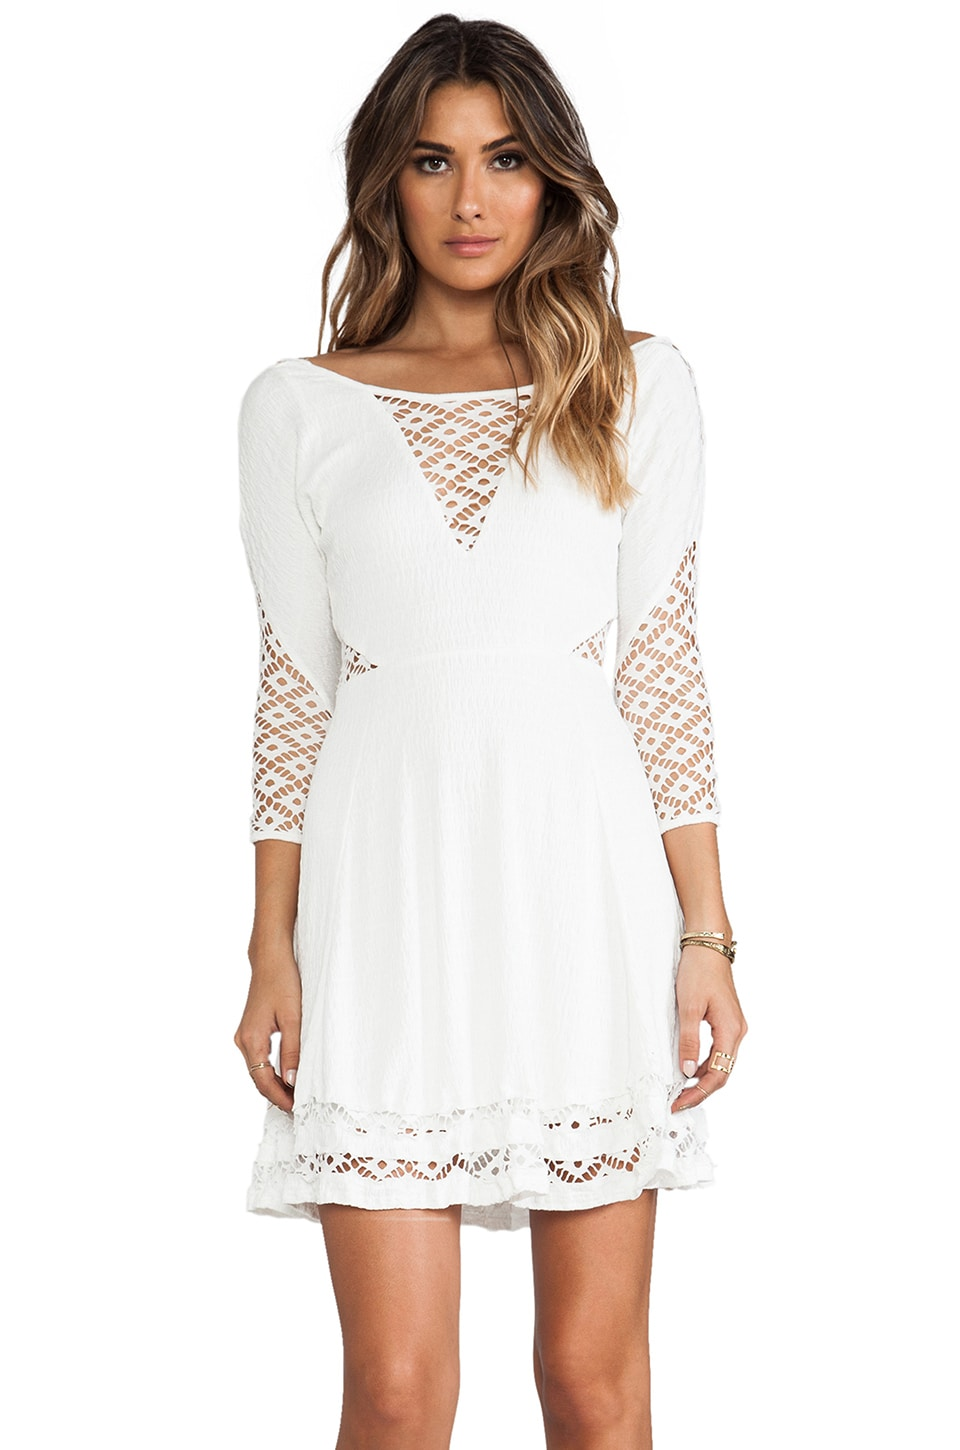 Free People To The Point Mini Dress in Snow